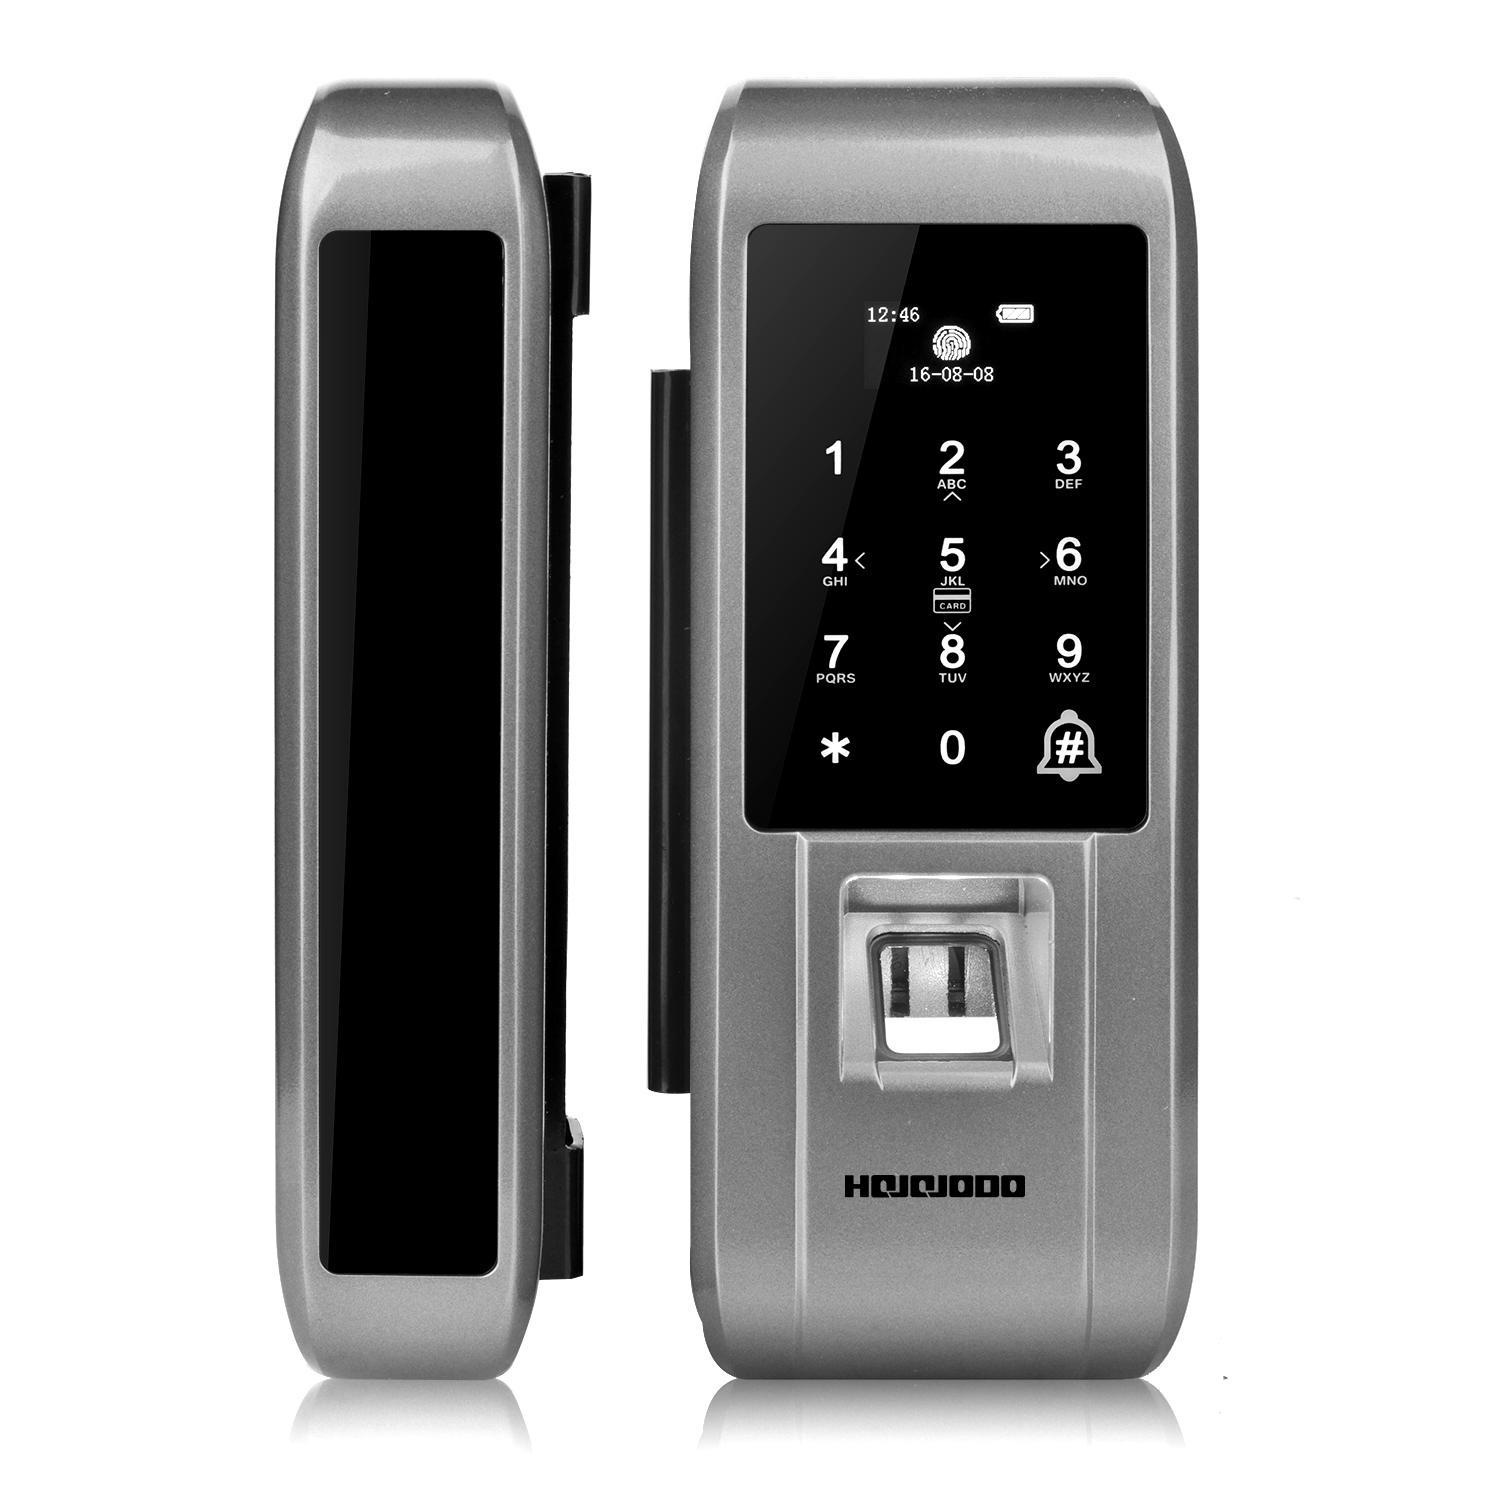 Fingerprint Password Code Pin Electronic Digtial Door Lock 50uA Support Chinese and English voice prompt and volume adjustment